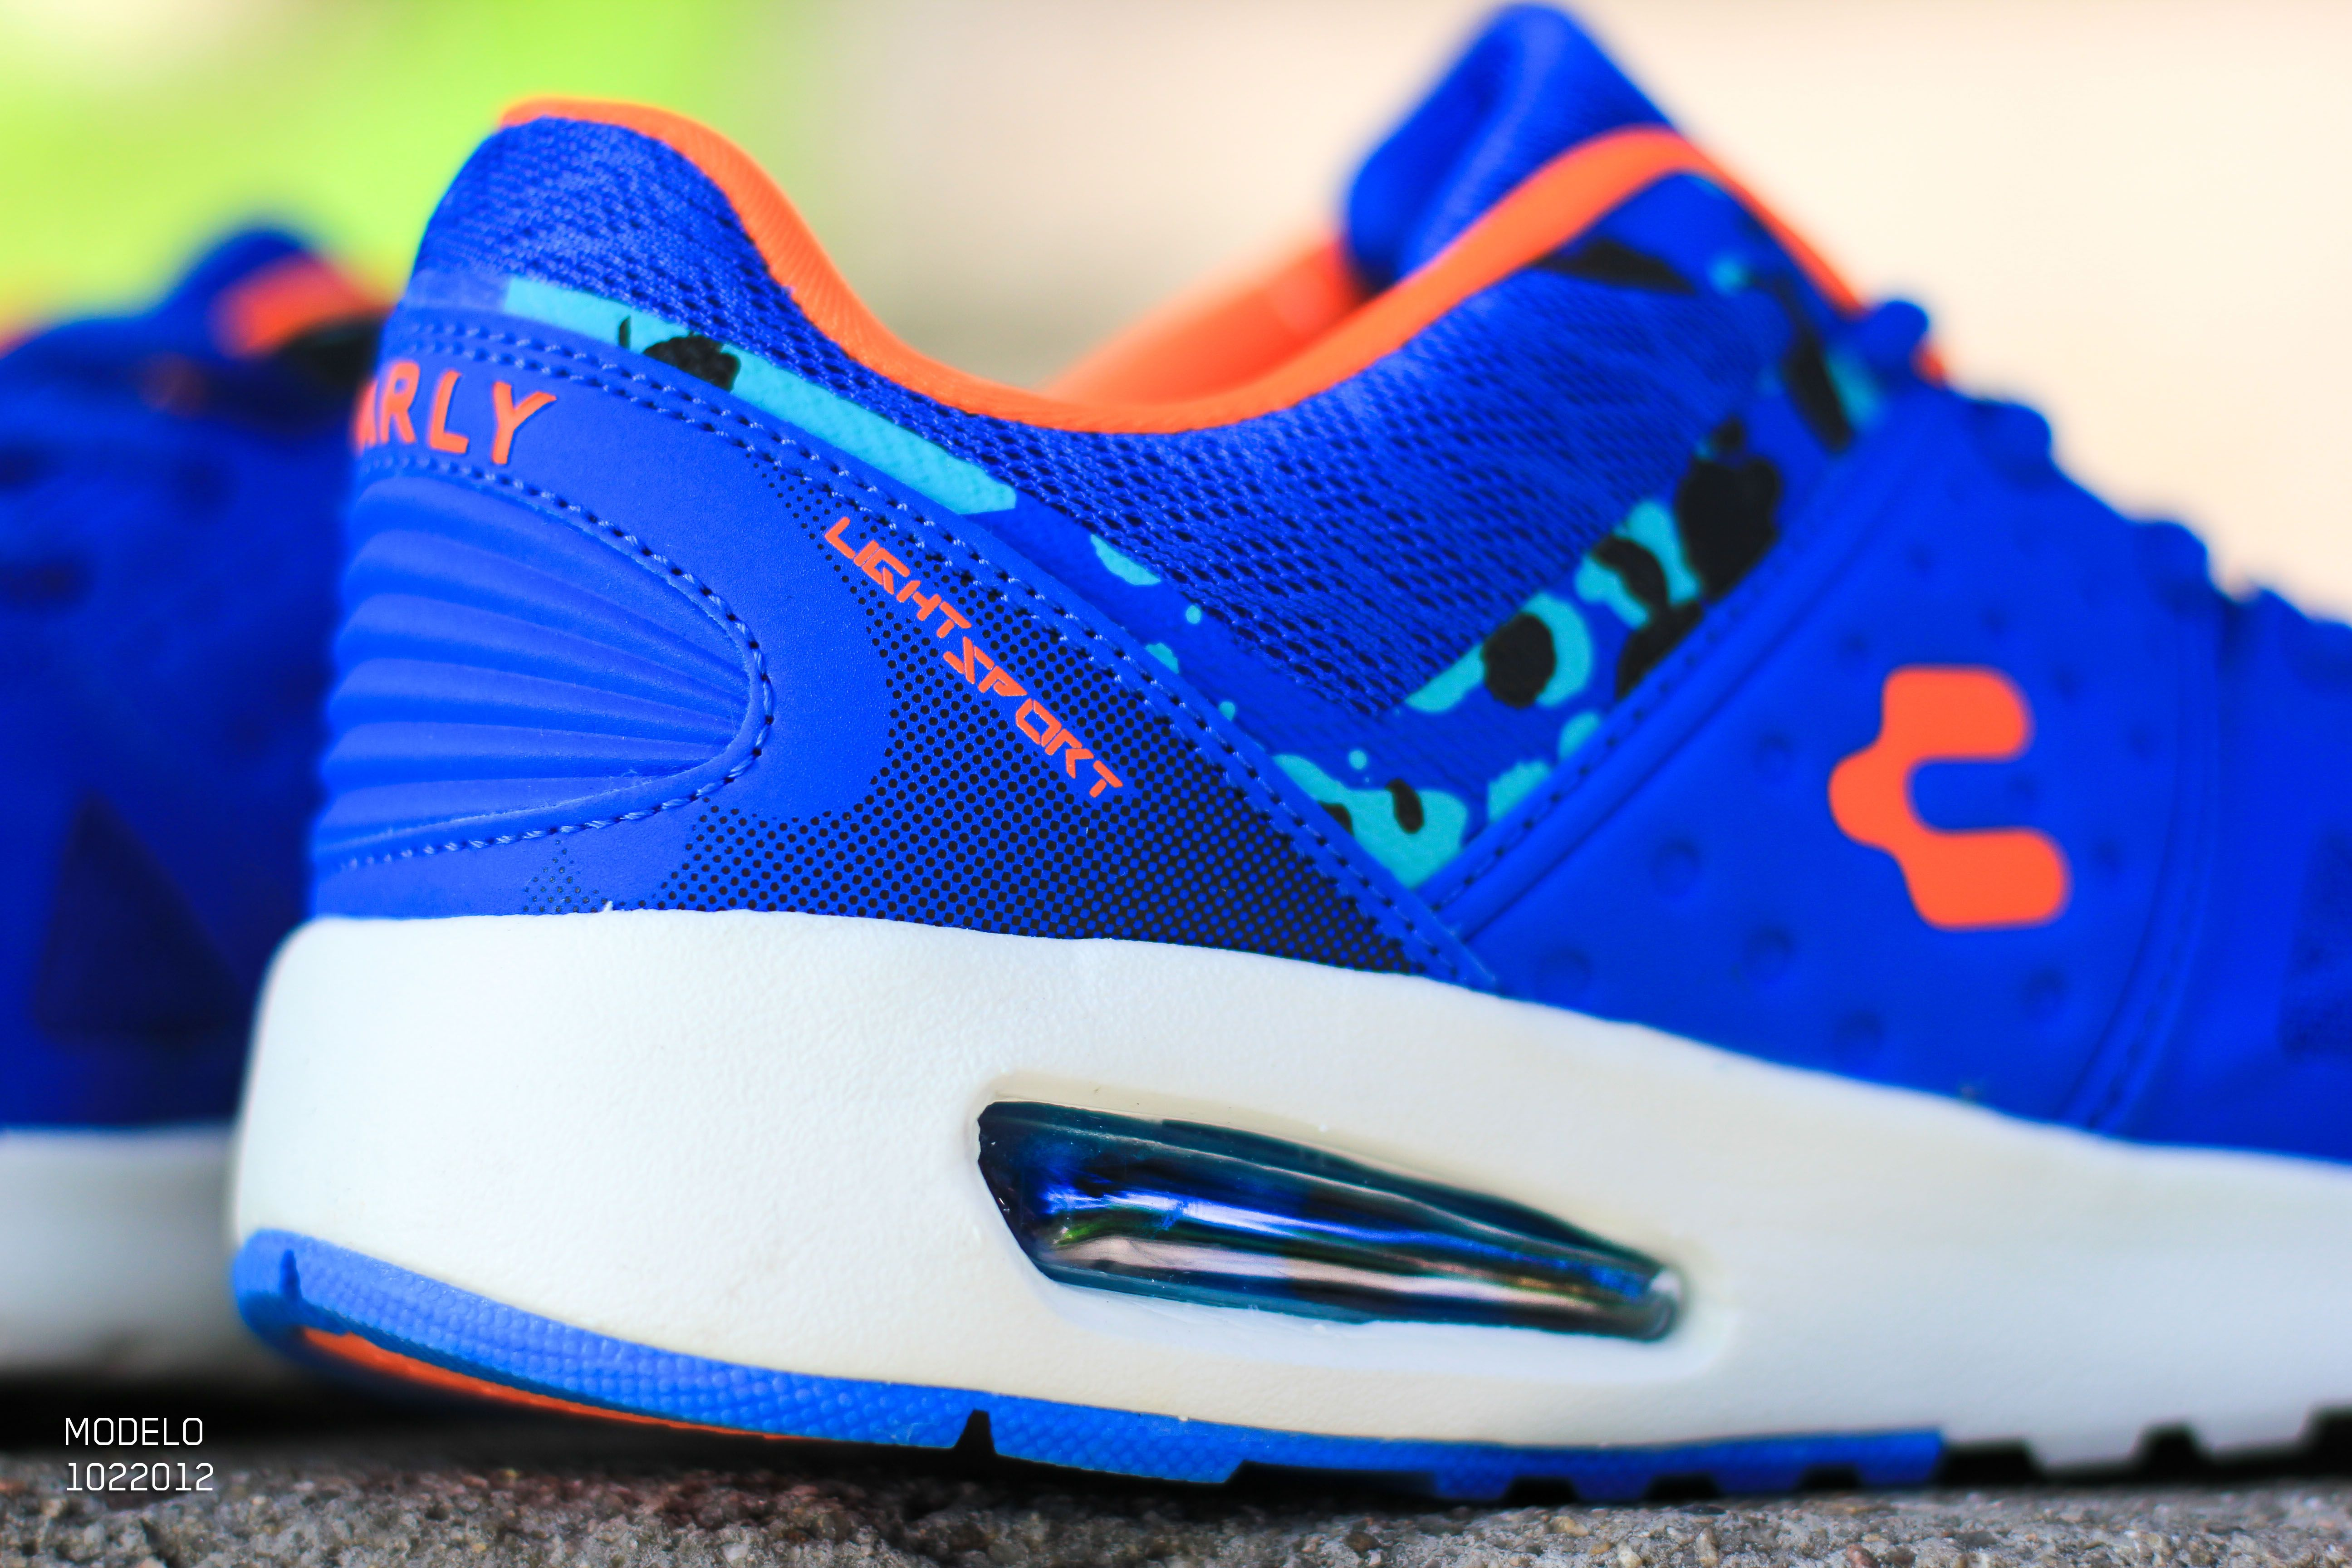 release date 7b5e0 a9fae Light Sport Sneakers, Tenis Azules, Tenis Charly